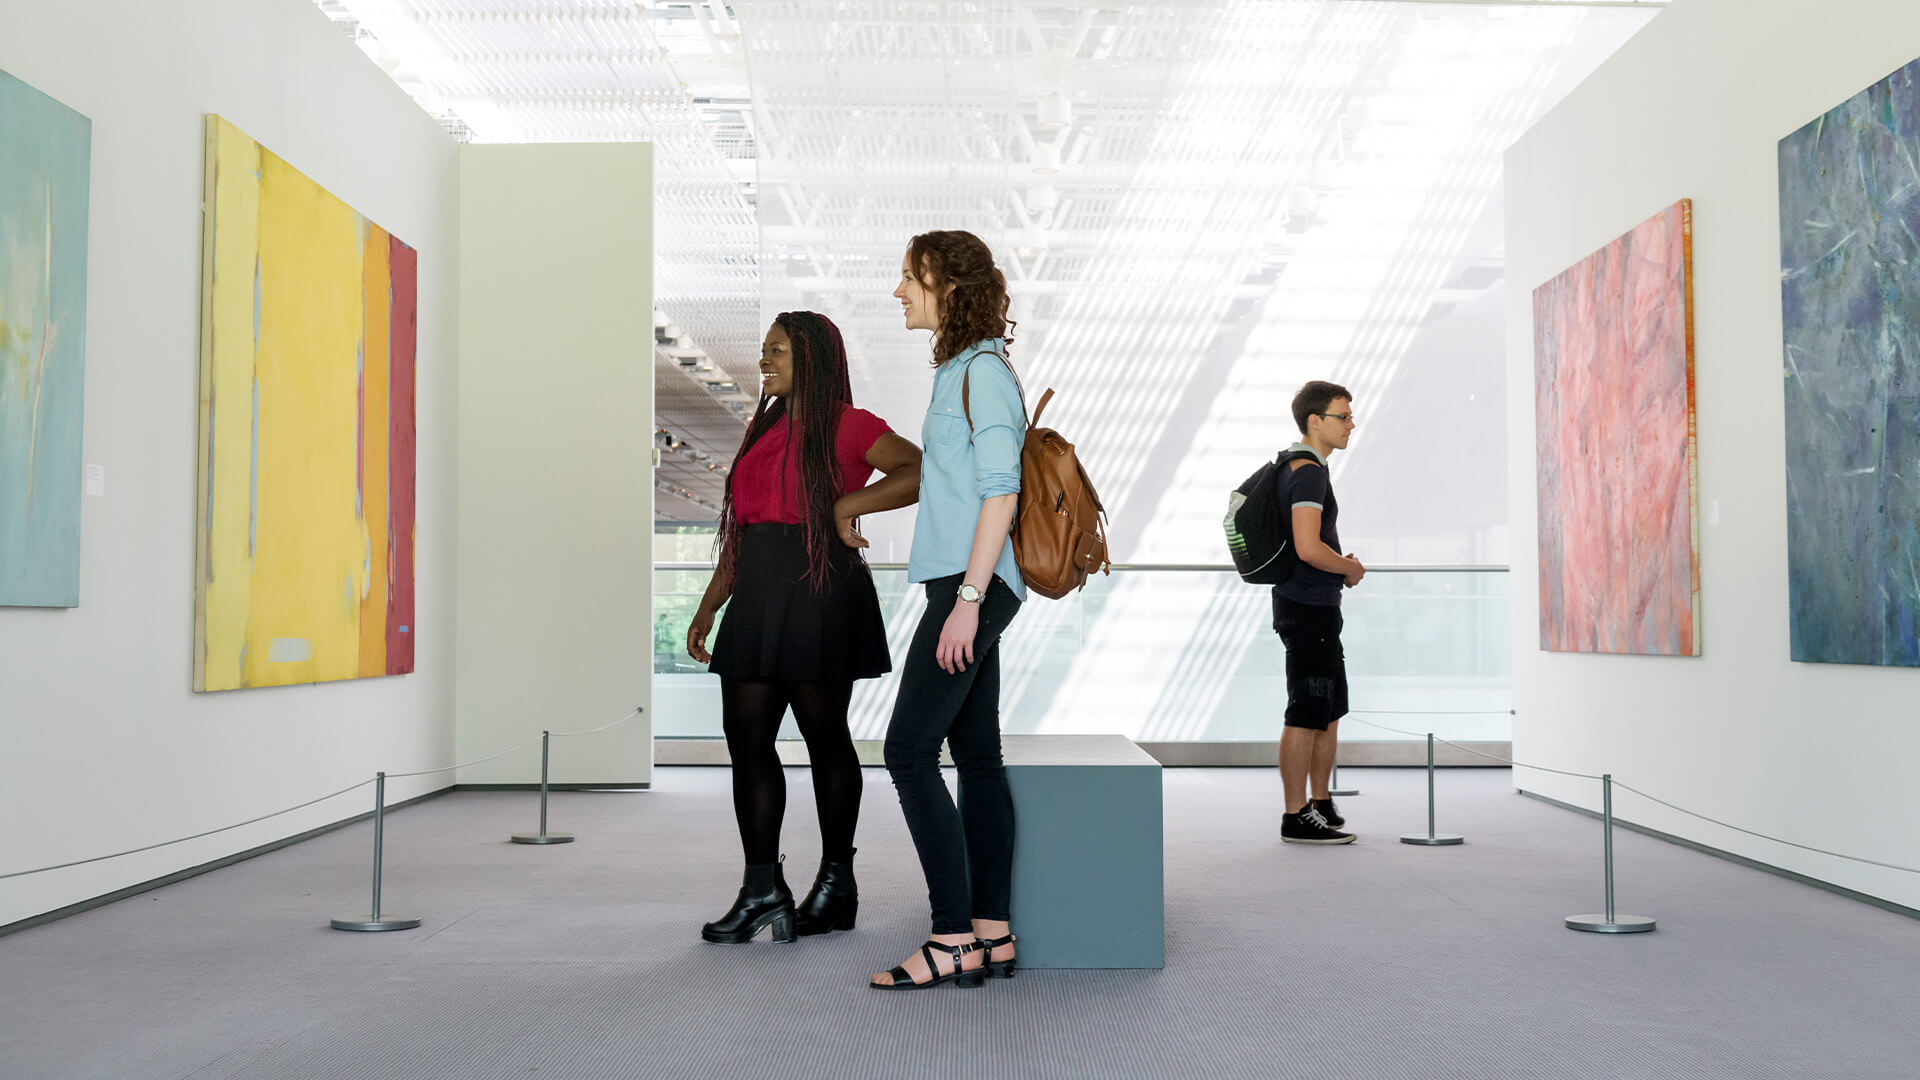 The Sainsbury Centre for Visual Arts is an art gallery on the campus of the University of East Anglia